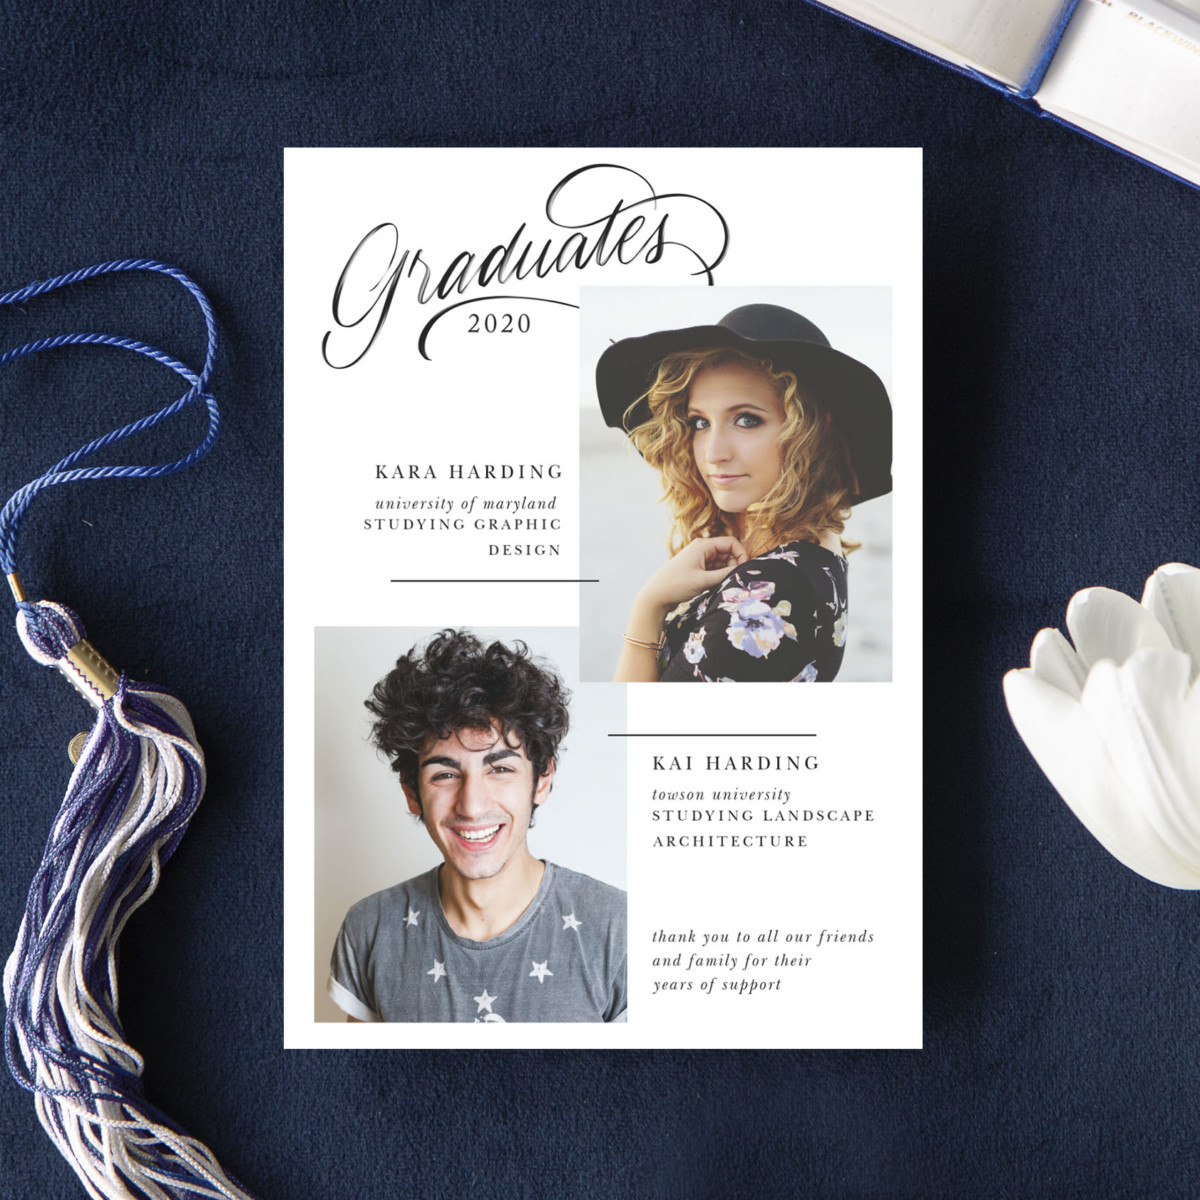 Graduation Invitations party template from Basic Invite